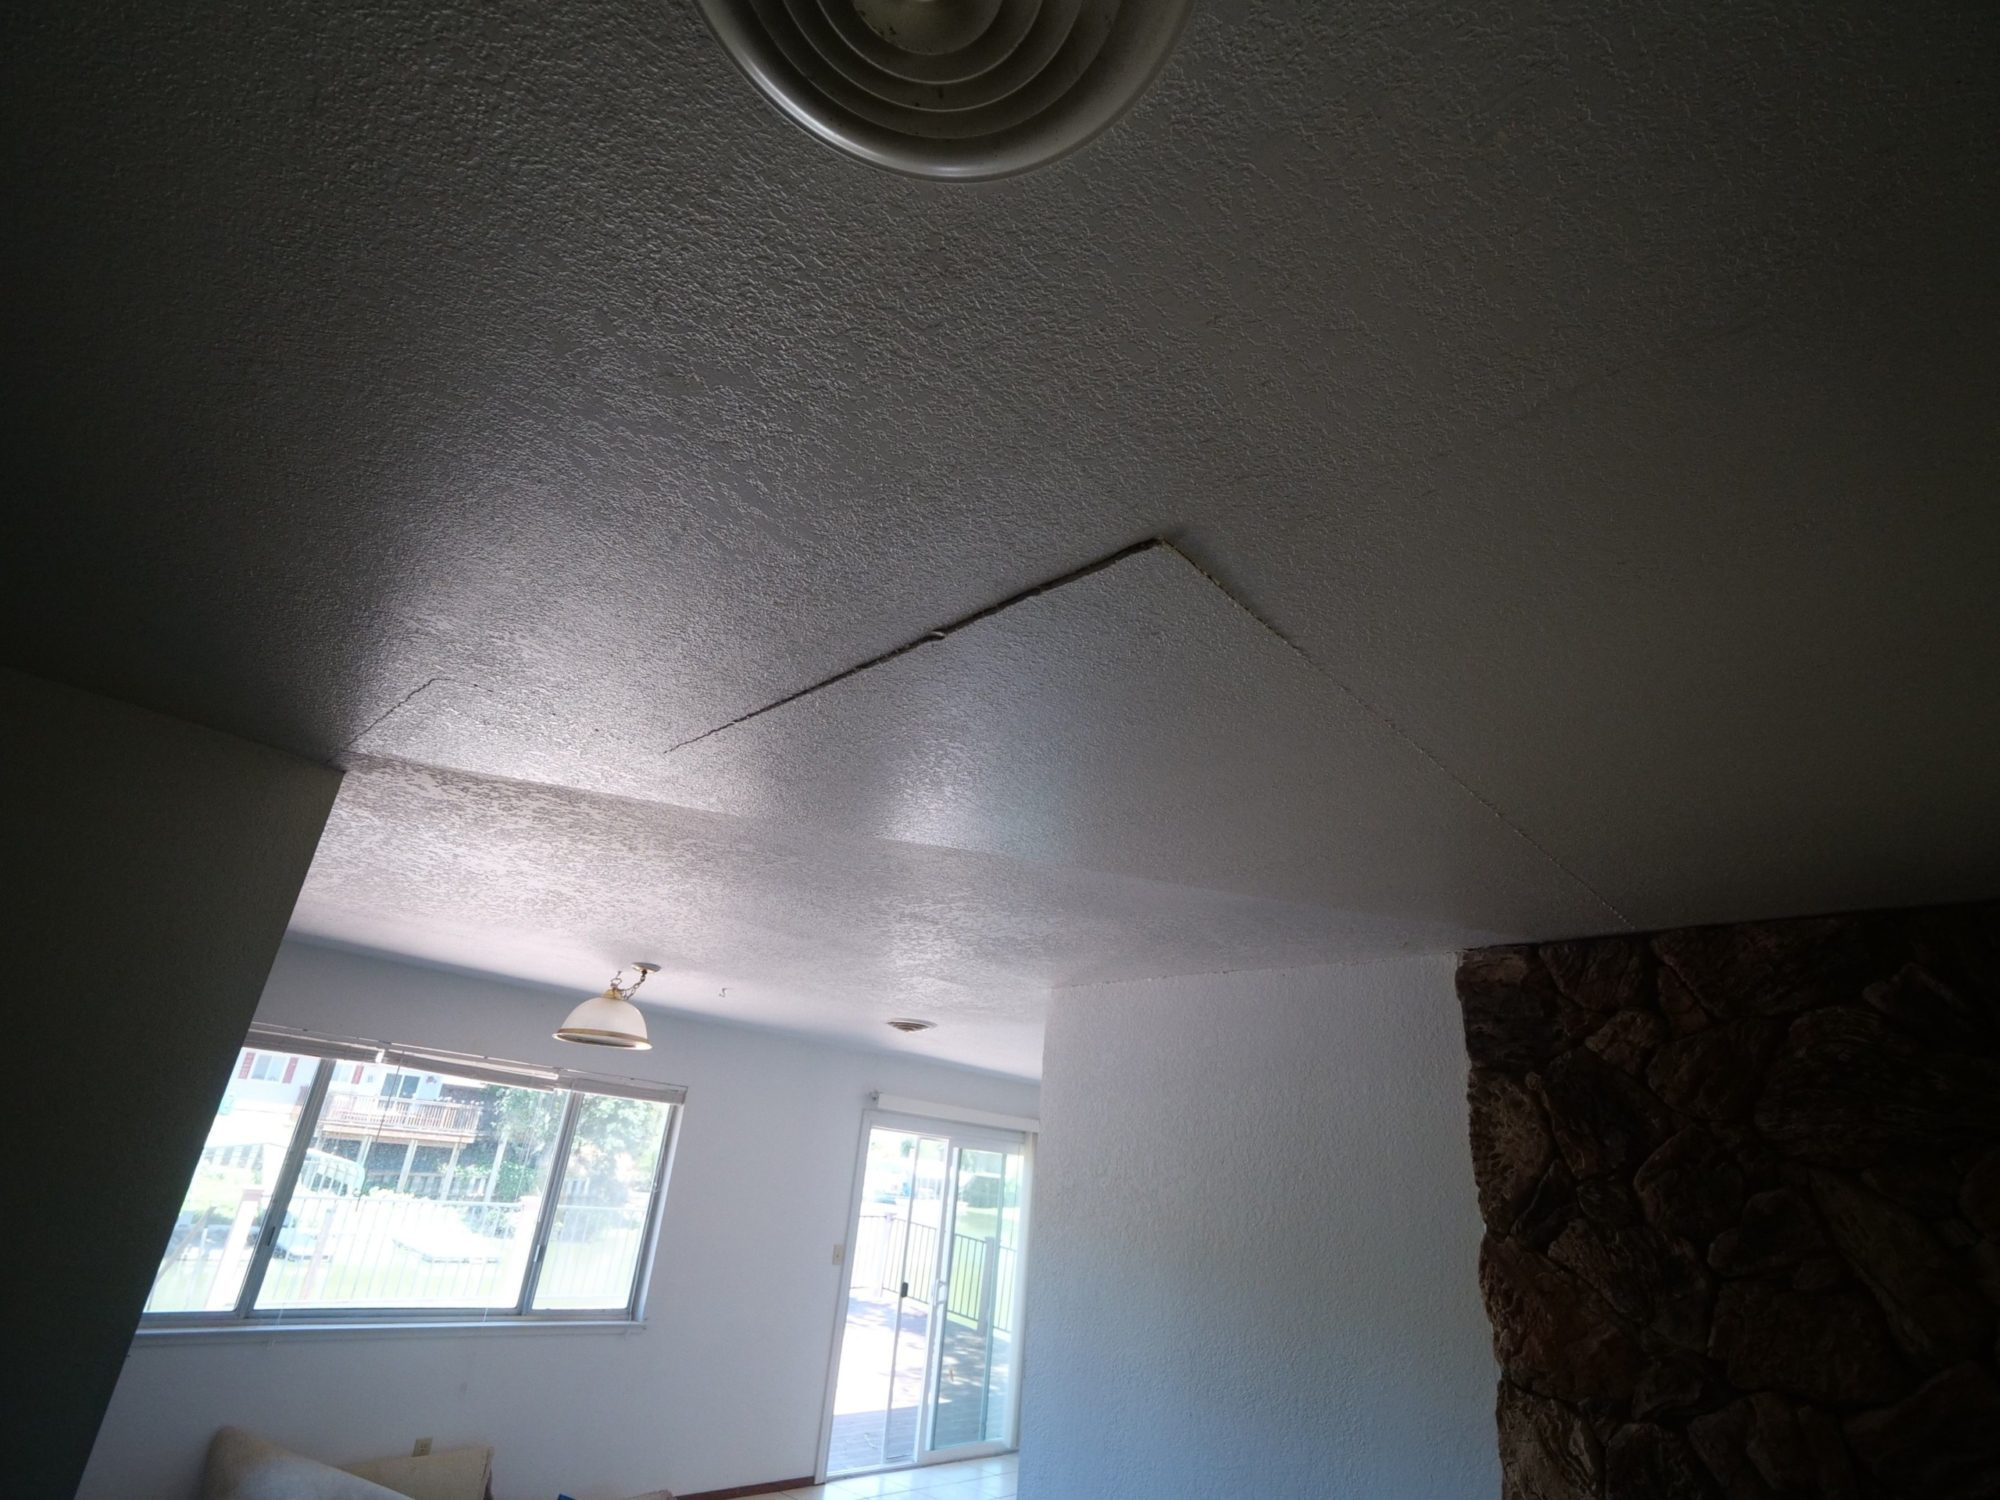 living room with a foundation crack on the ceiling